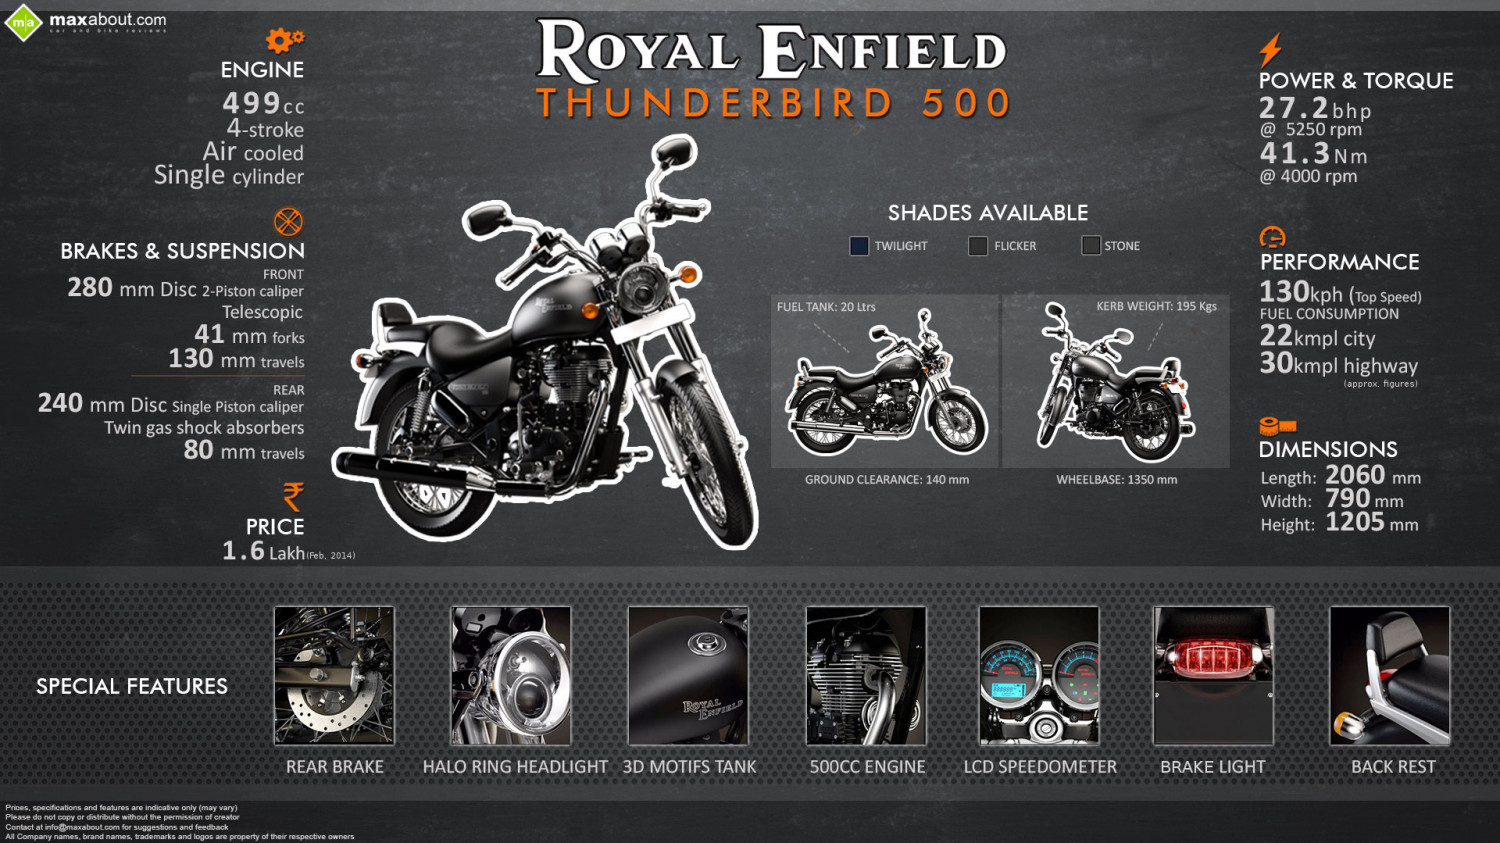 Royal Enfield Thunderbird 500: All You Need to Know Infographic